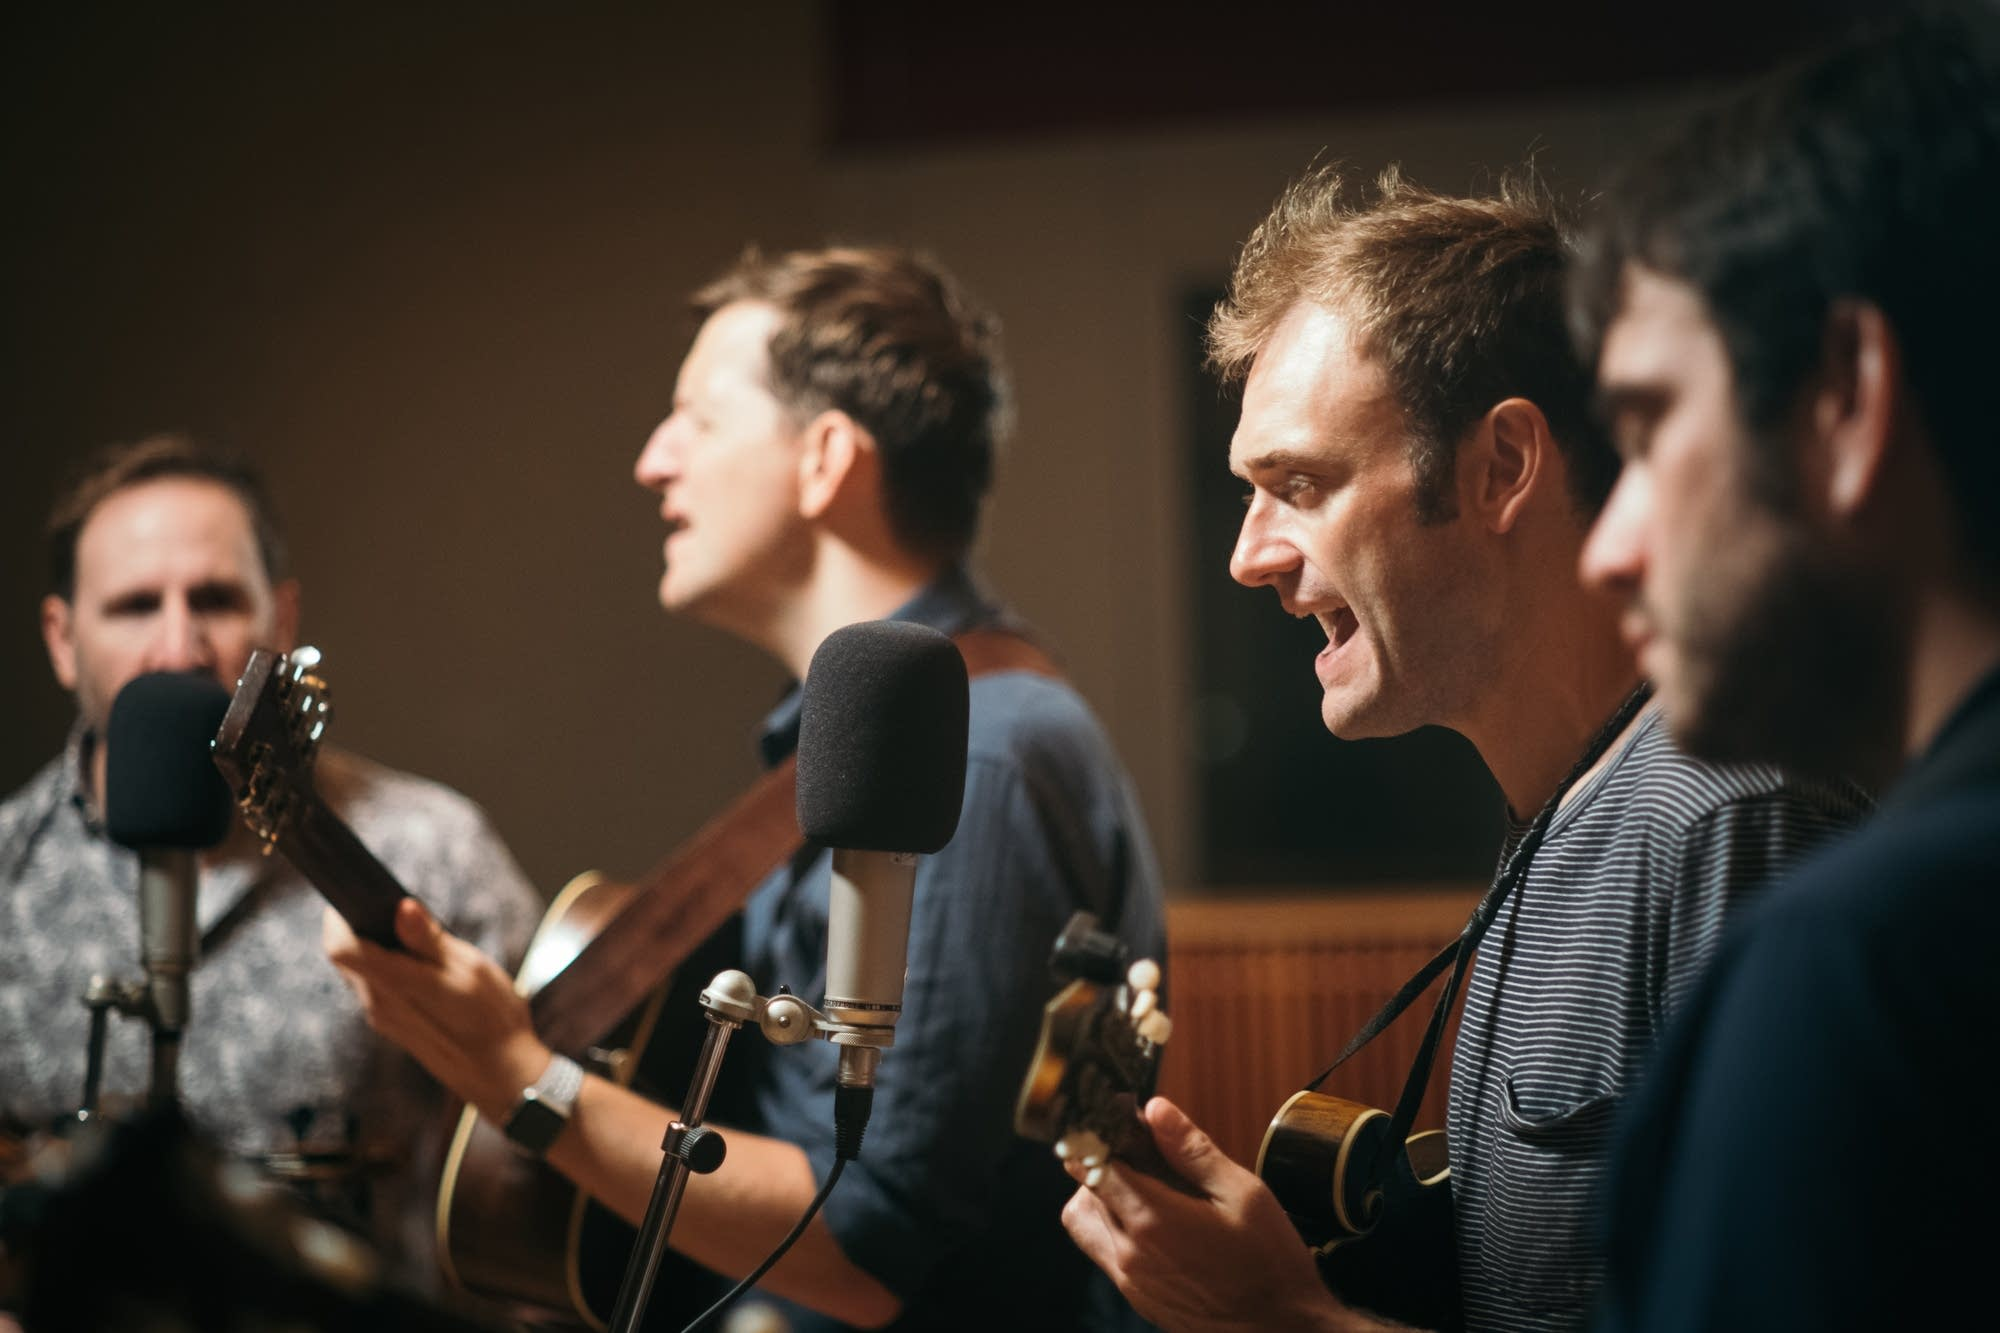 Punch Brothers perform in The Current studio